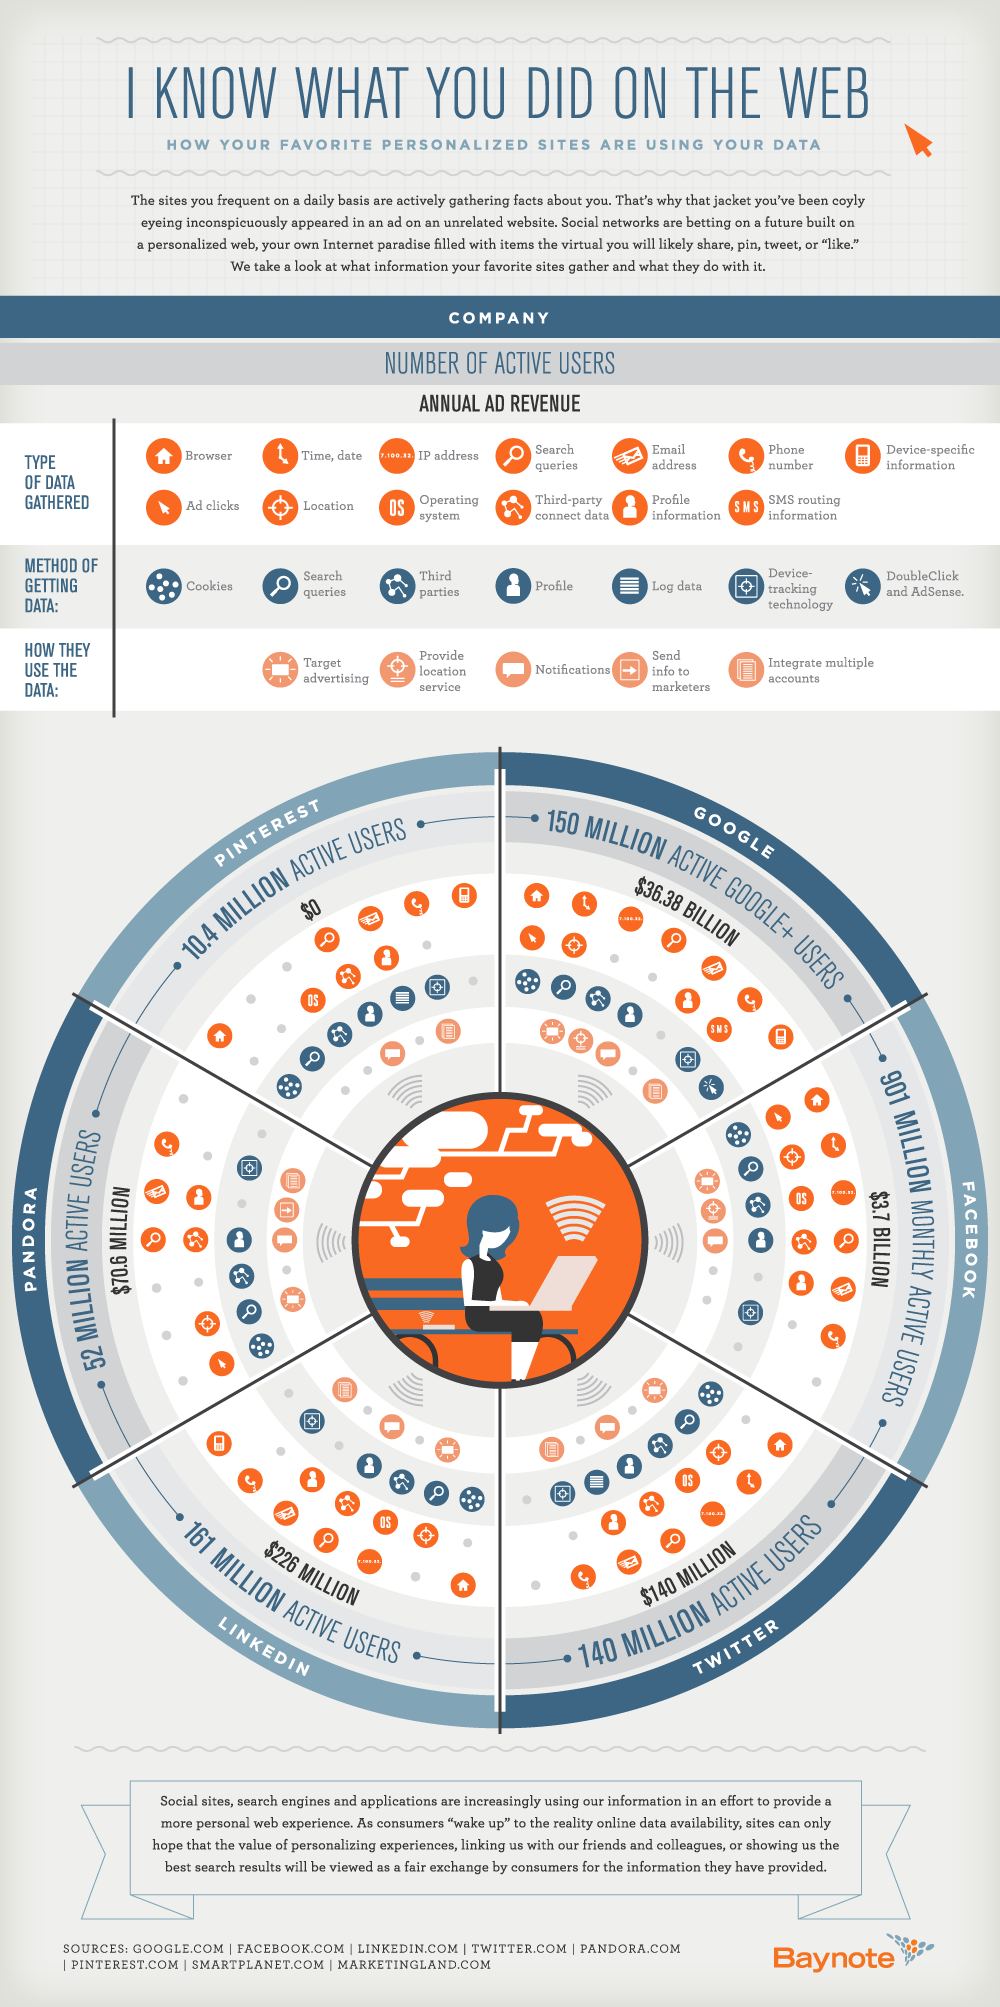 I-Know-What-You-Did-On-The-Web-infographic